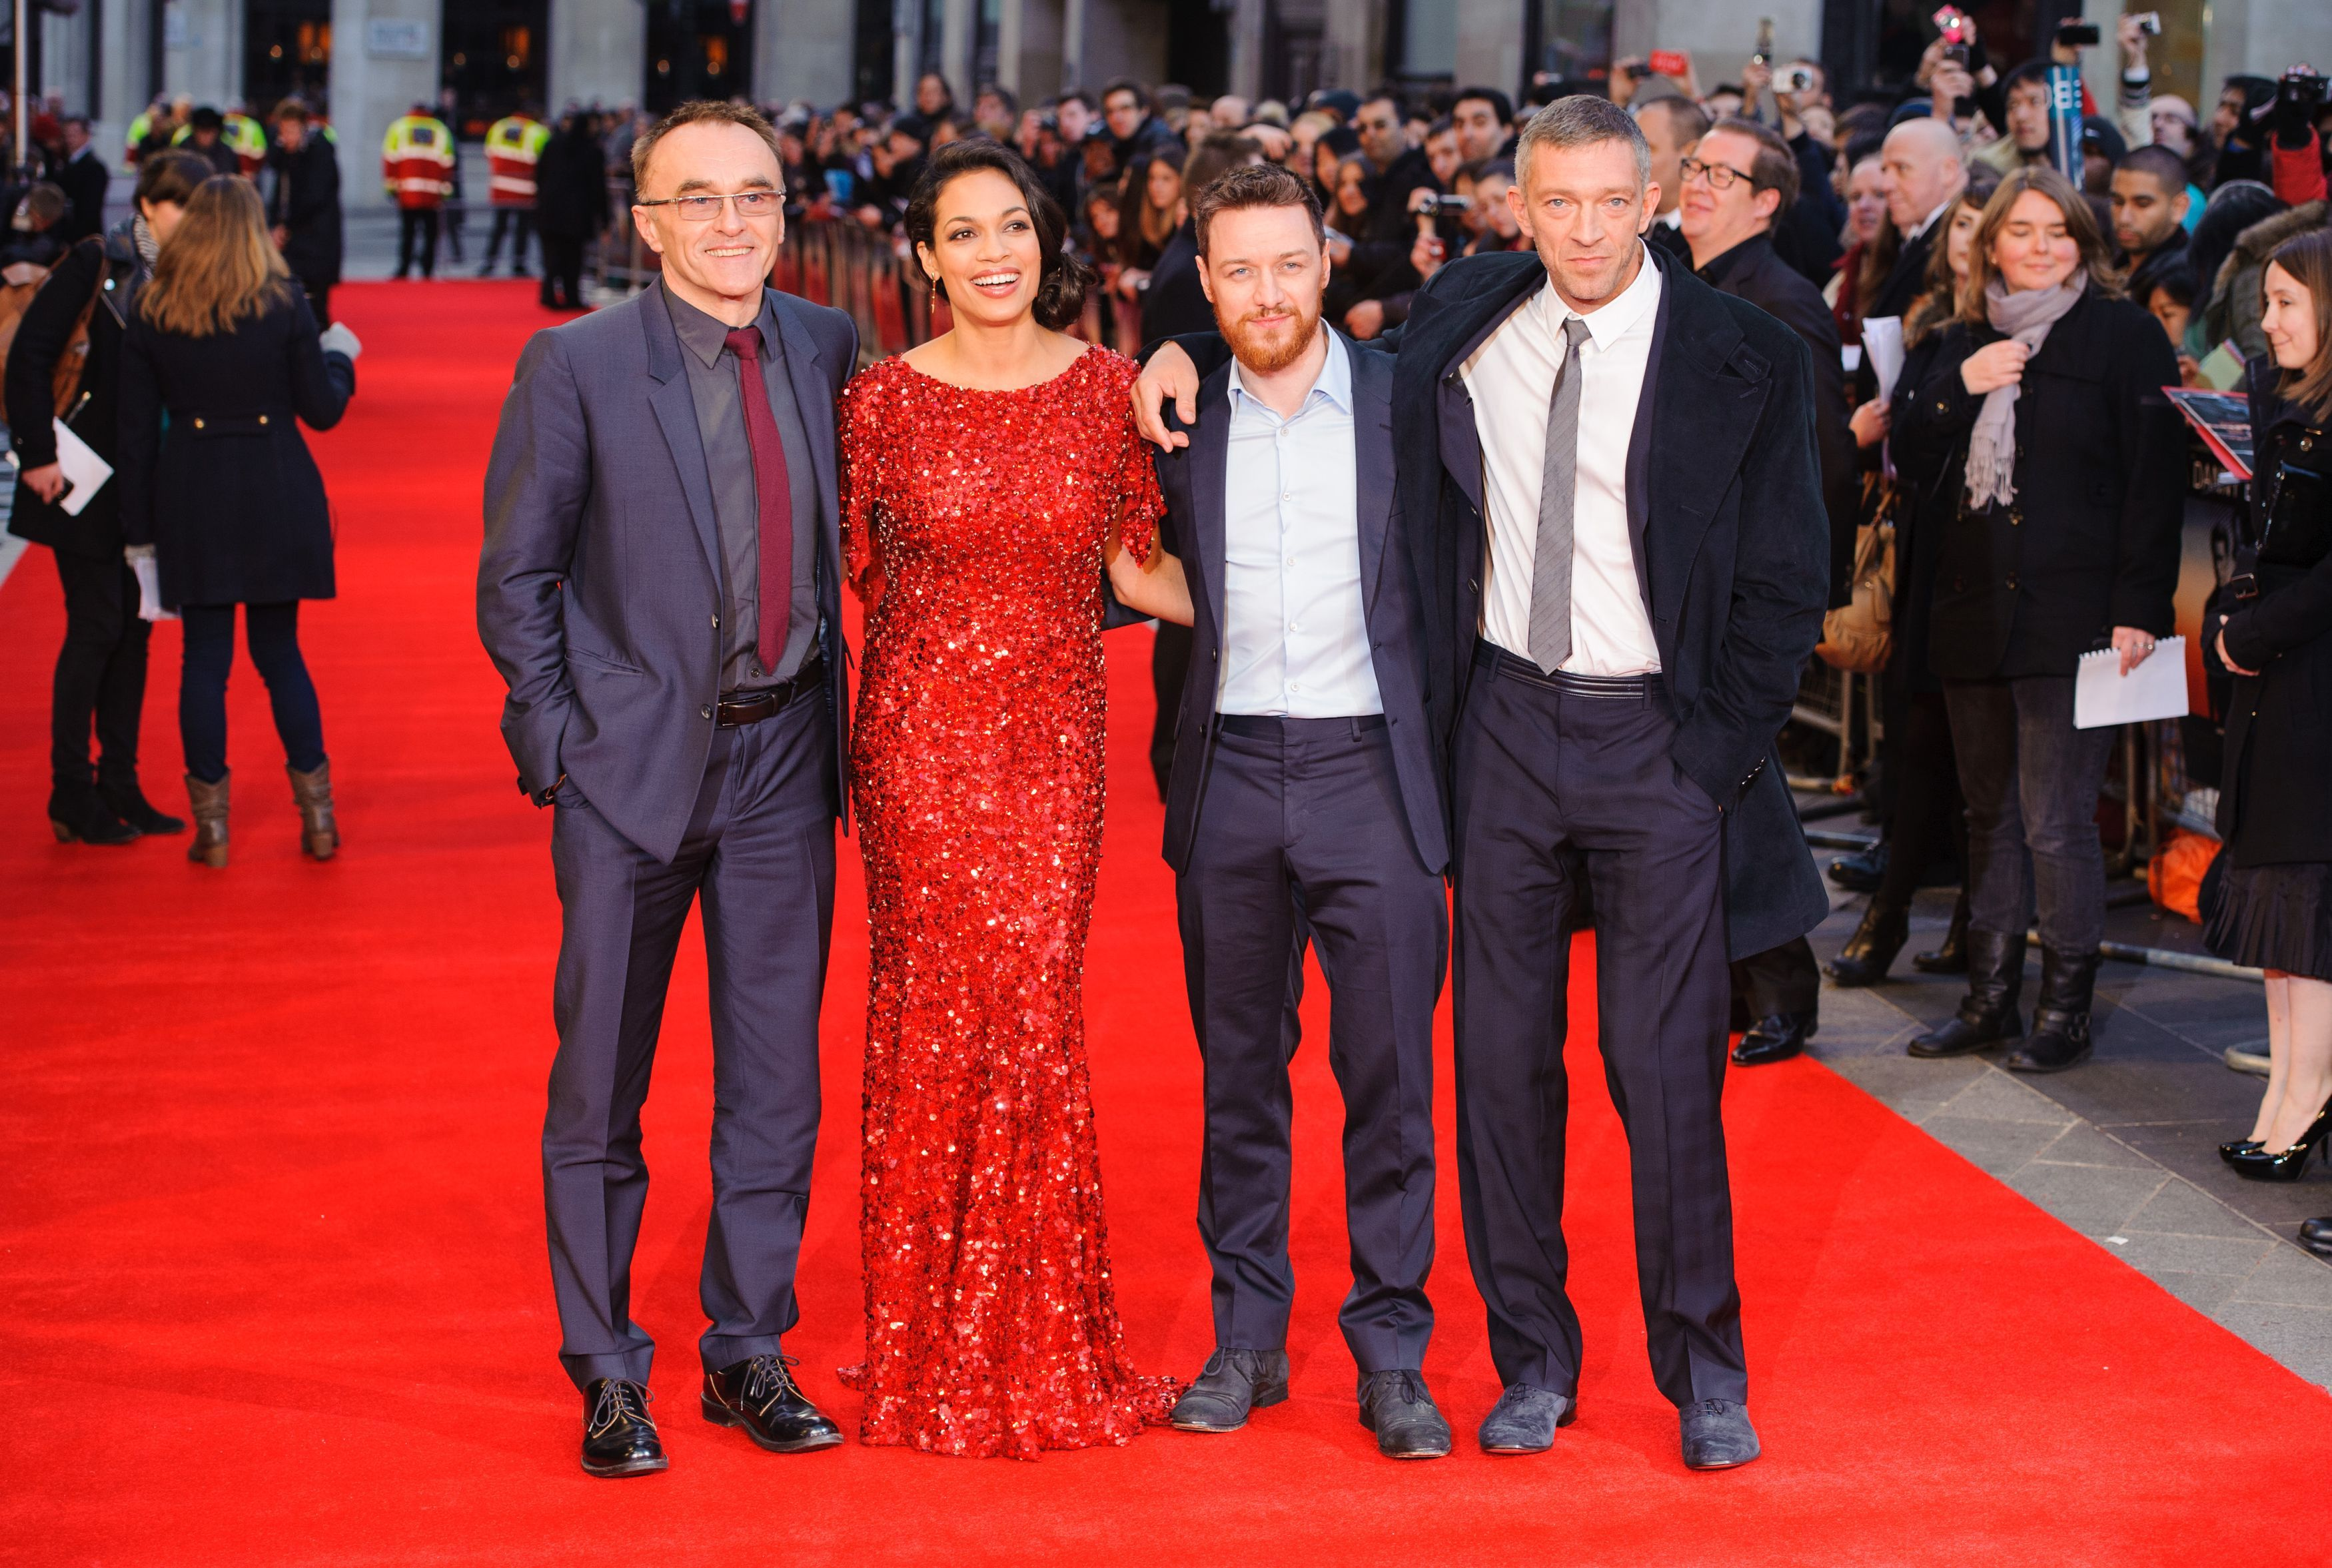 Danny Boyle, James McAvoy and Rosario Dawson walk red carpet for Trance